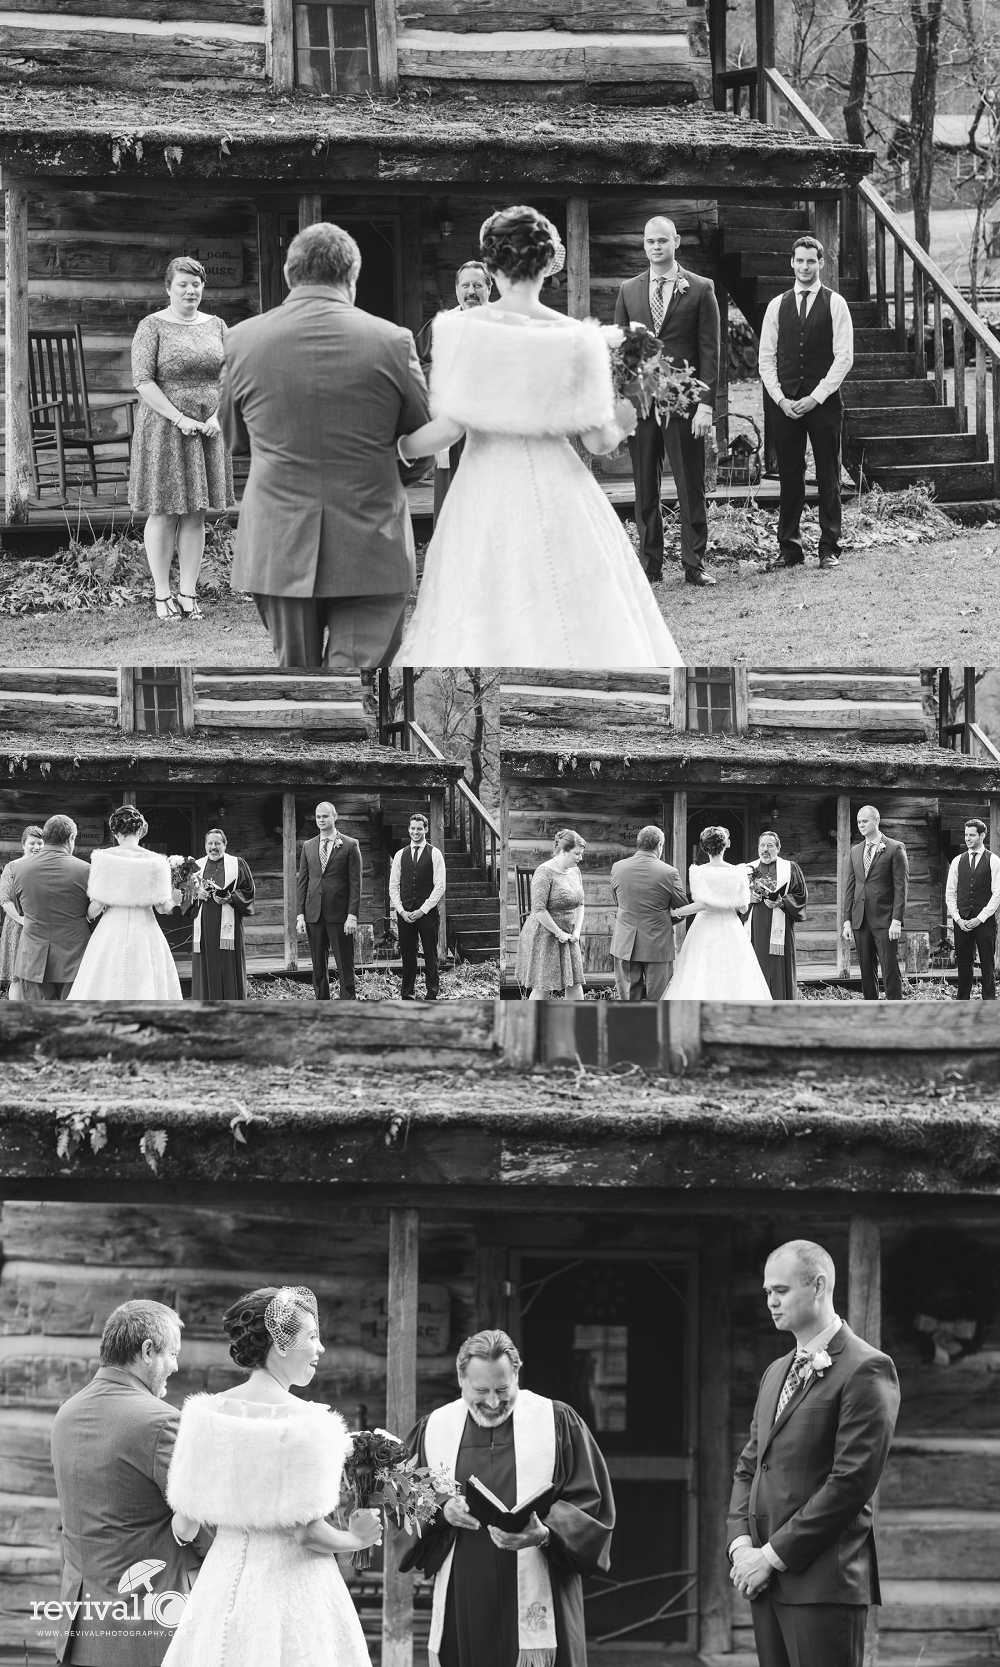 Photos by Revival Photography Valle Crucis Wedding Photographer Intimate Vintage Rustic Winter Wedding at The Mast Farm Inn North Carolina Weddings www.revivalphotography.com